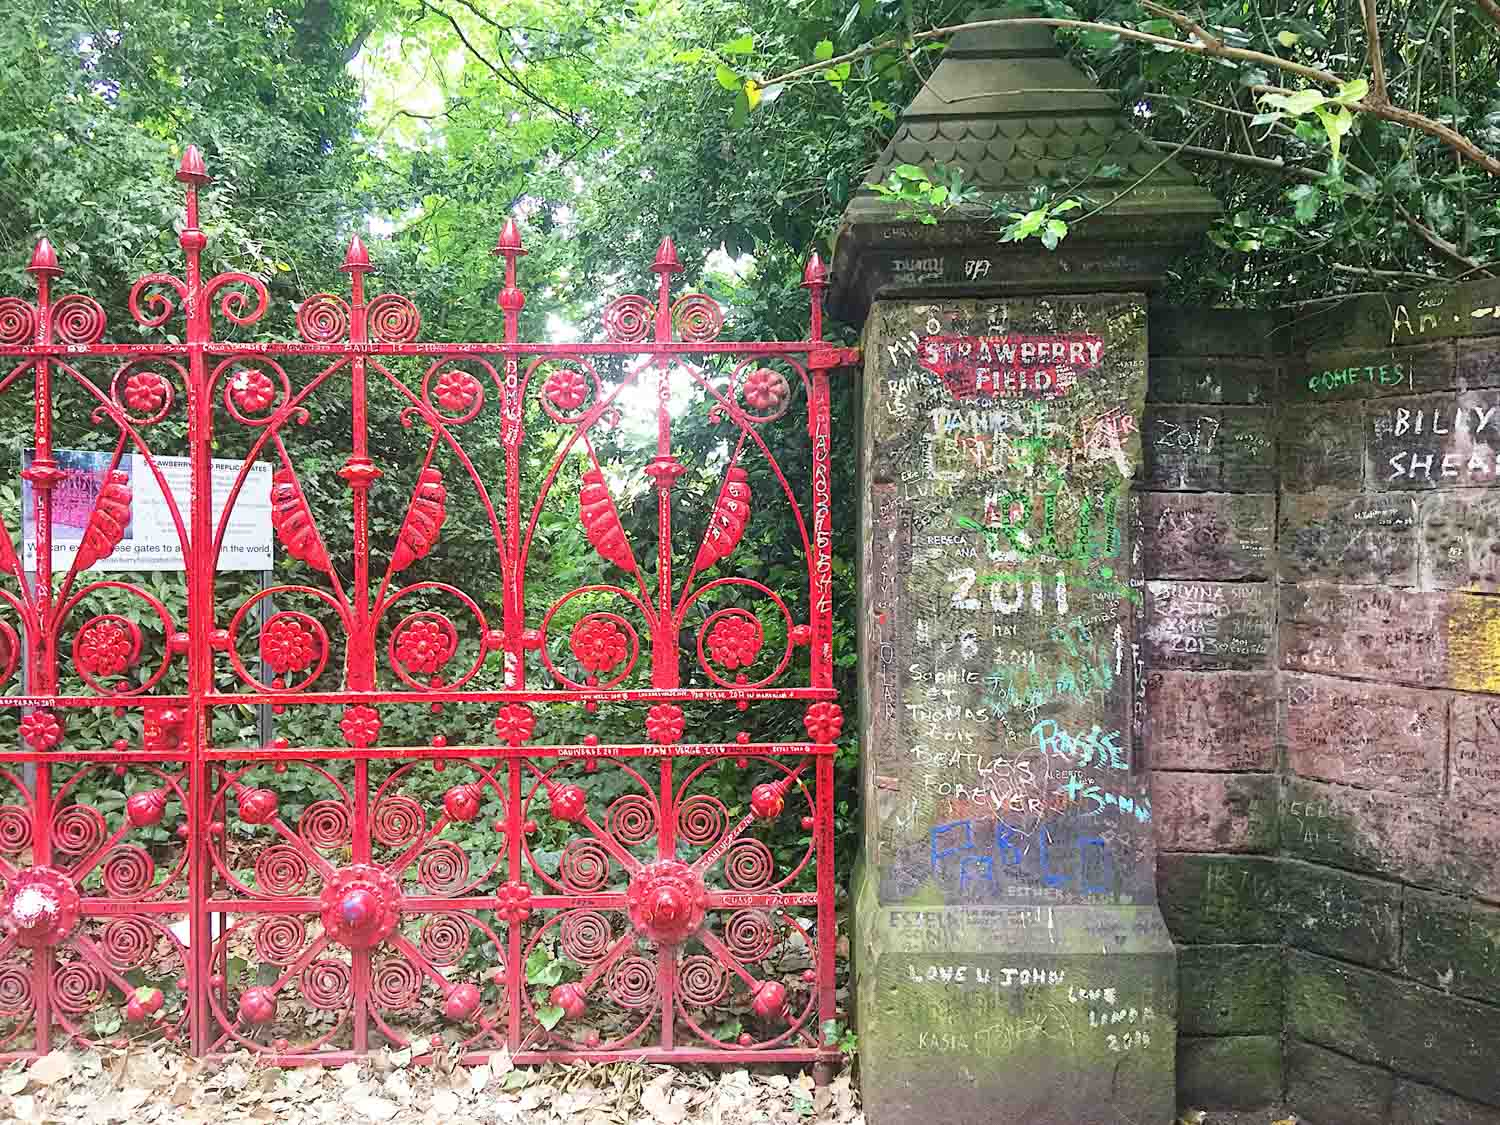 Best things to do in Liverpool - Strawberry Fields